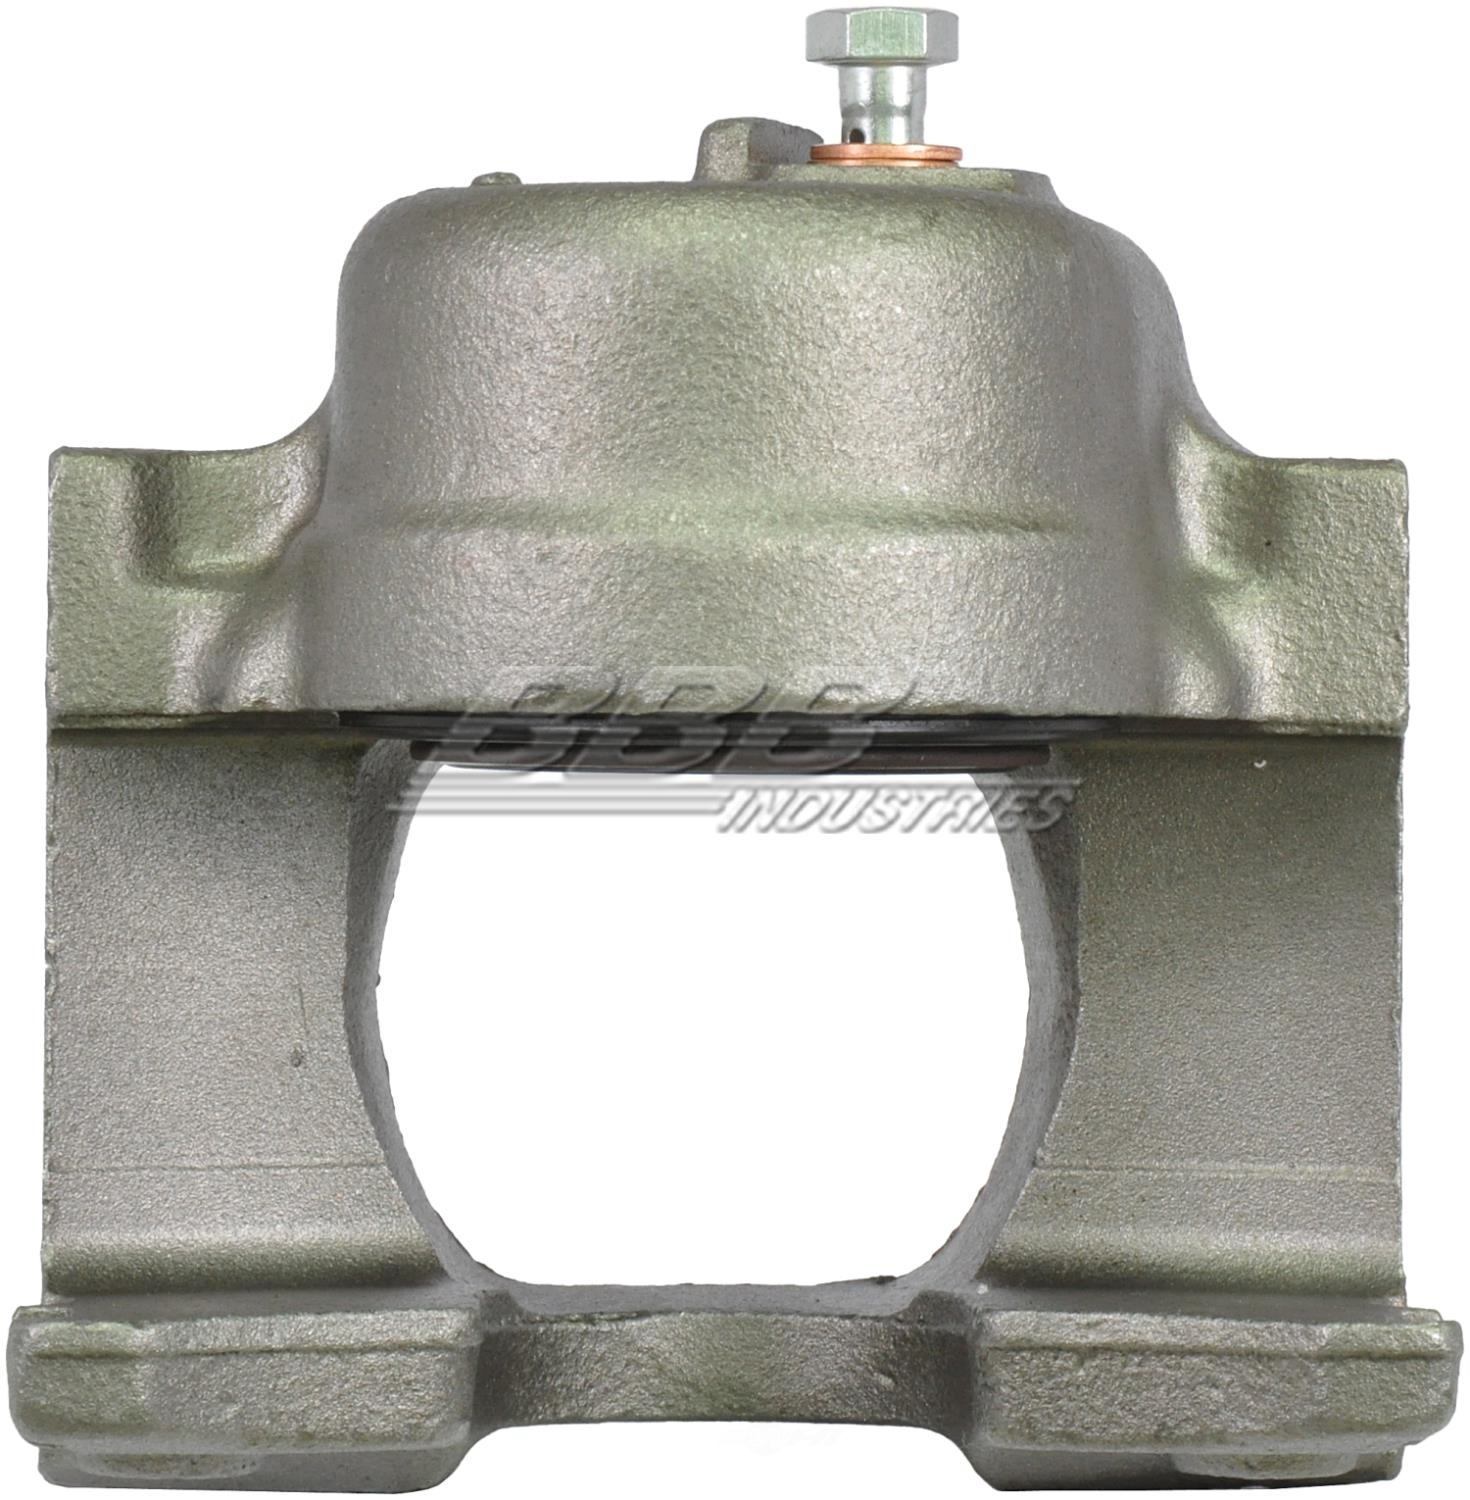 BBB INDUSTRIES - Reman Caliper W/installation Hardware - BBA 97-01132B